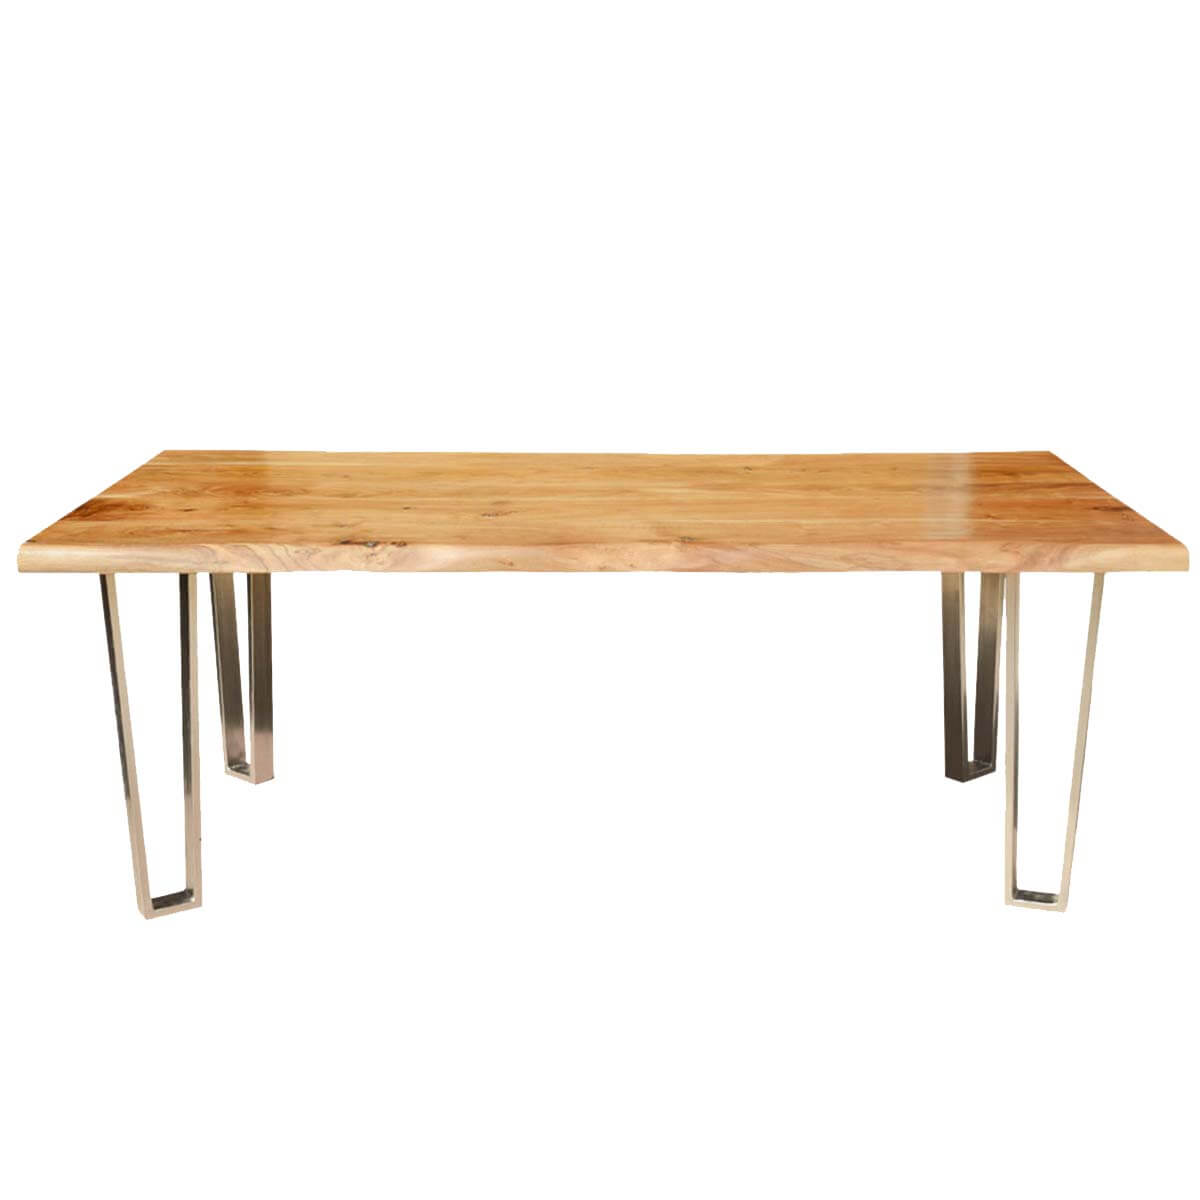 Solid Wood amp Iron Rustic Live Edge Dining Table